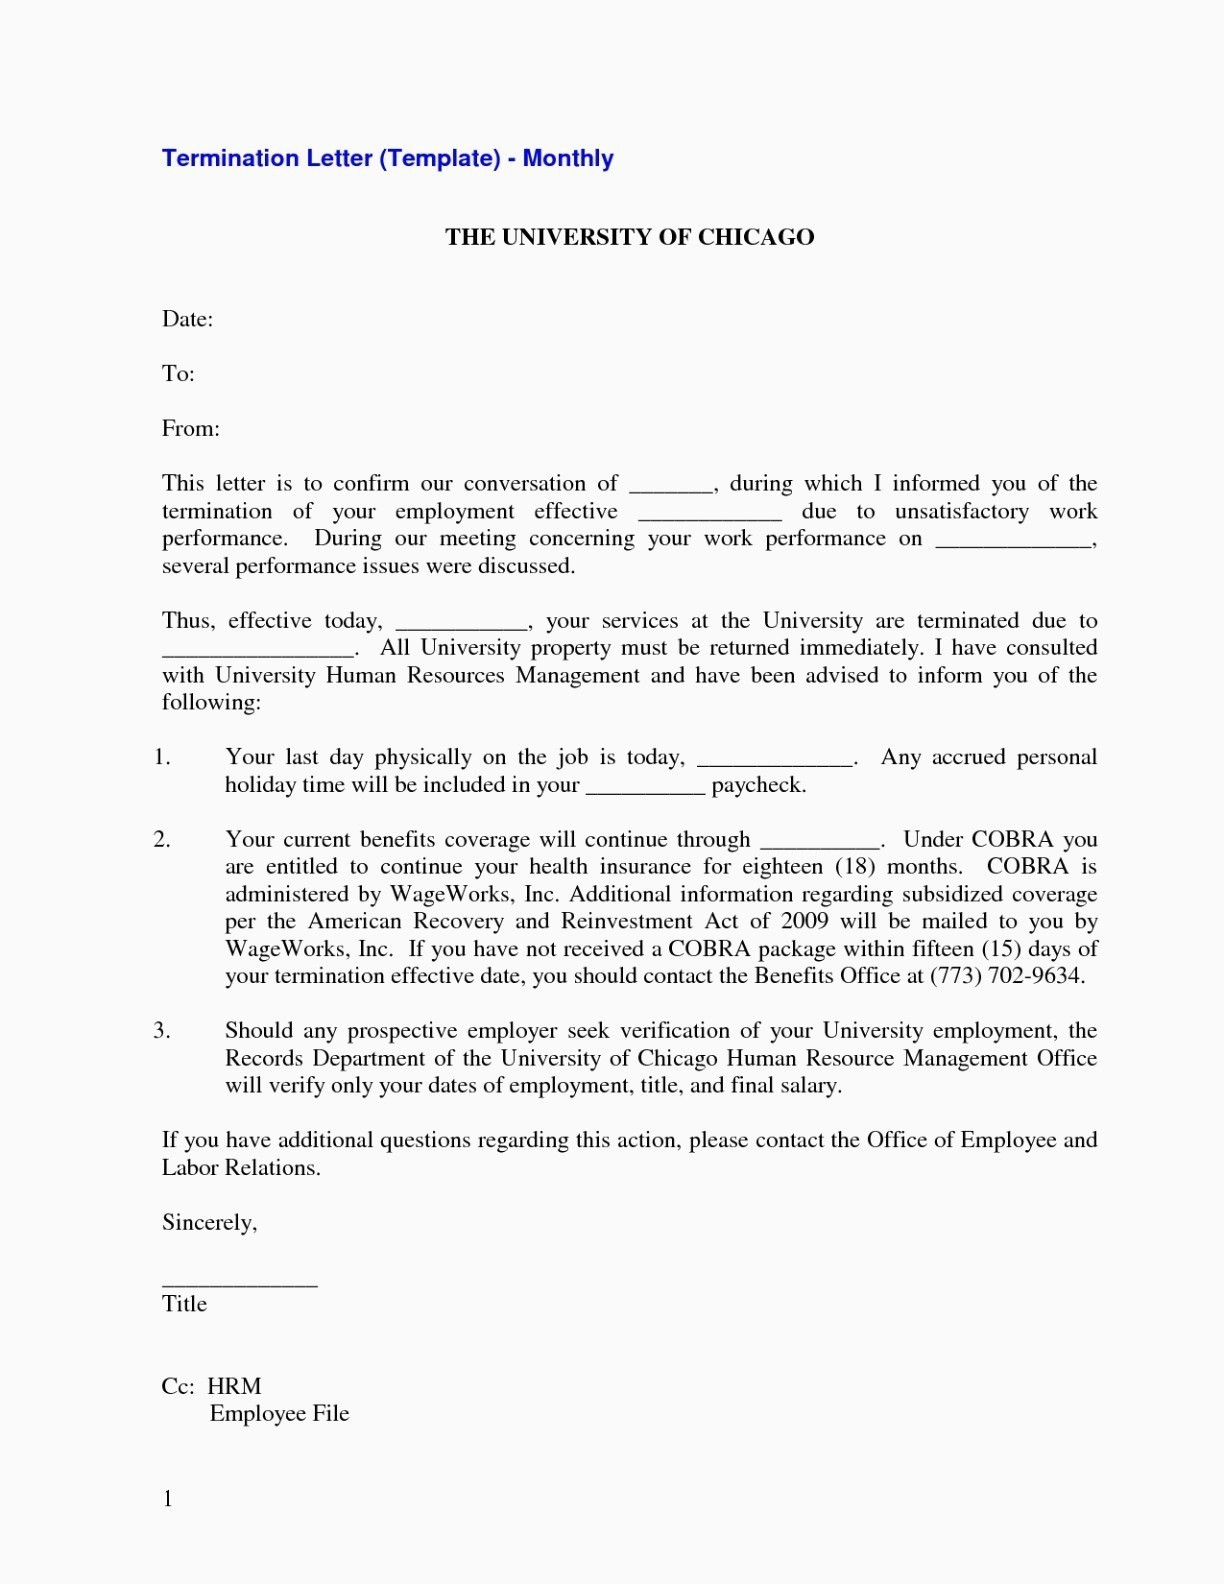 Employee Termination Letter Template Free - Termination Letter format without Notice Period New Job Termination